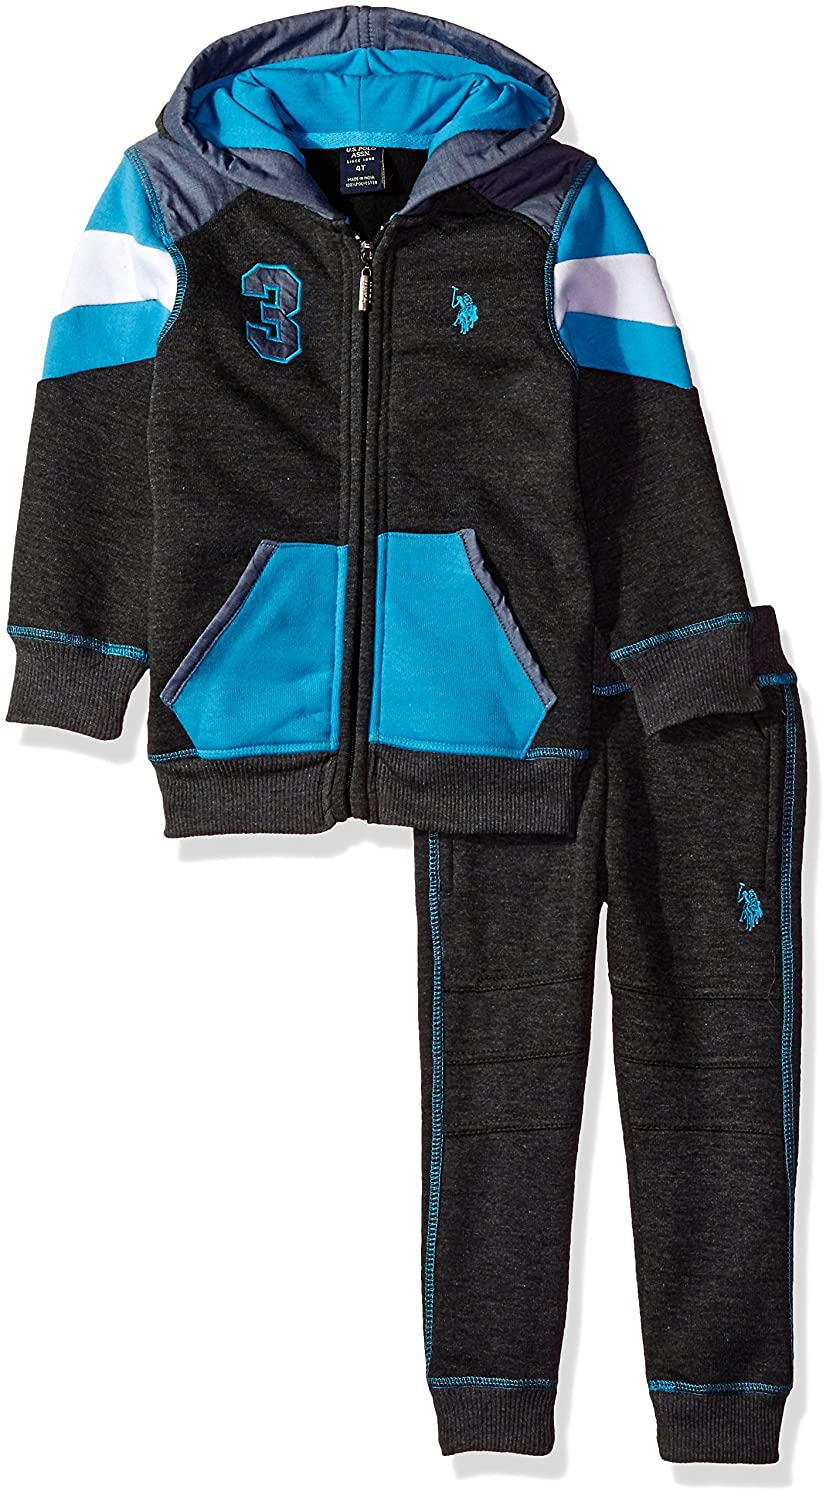 Boys Toddler 2 Piece Jog Set U.S Polo Assn